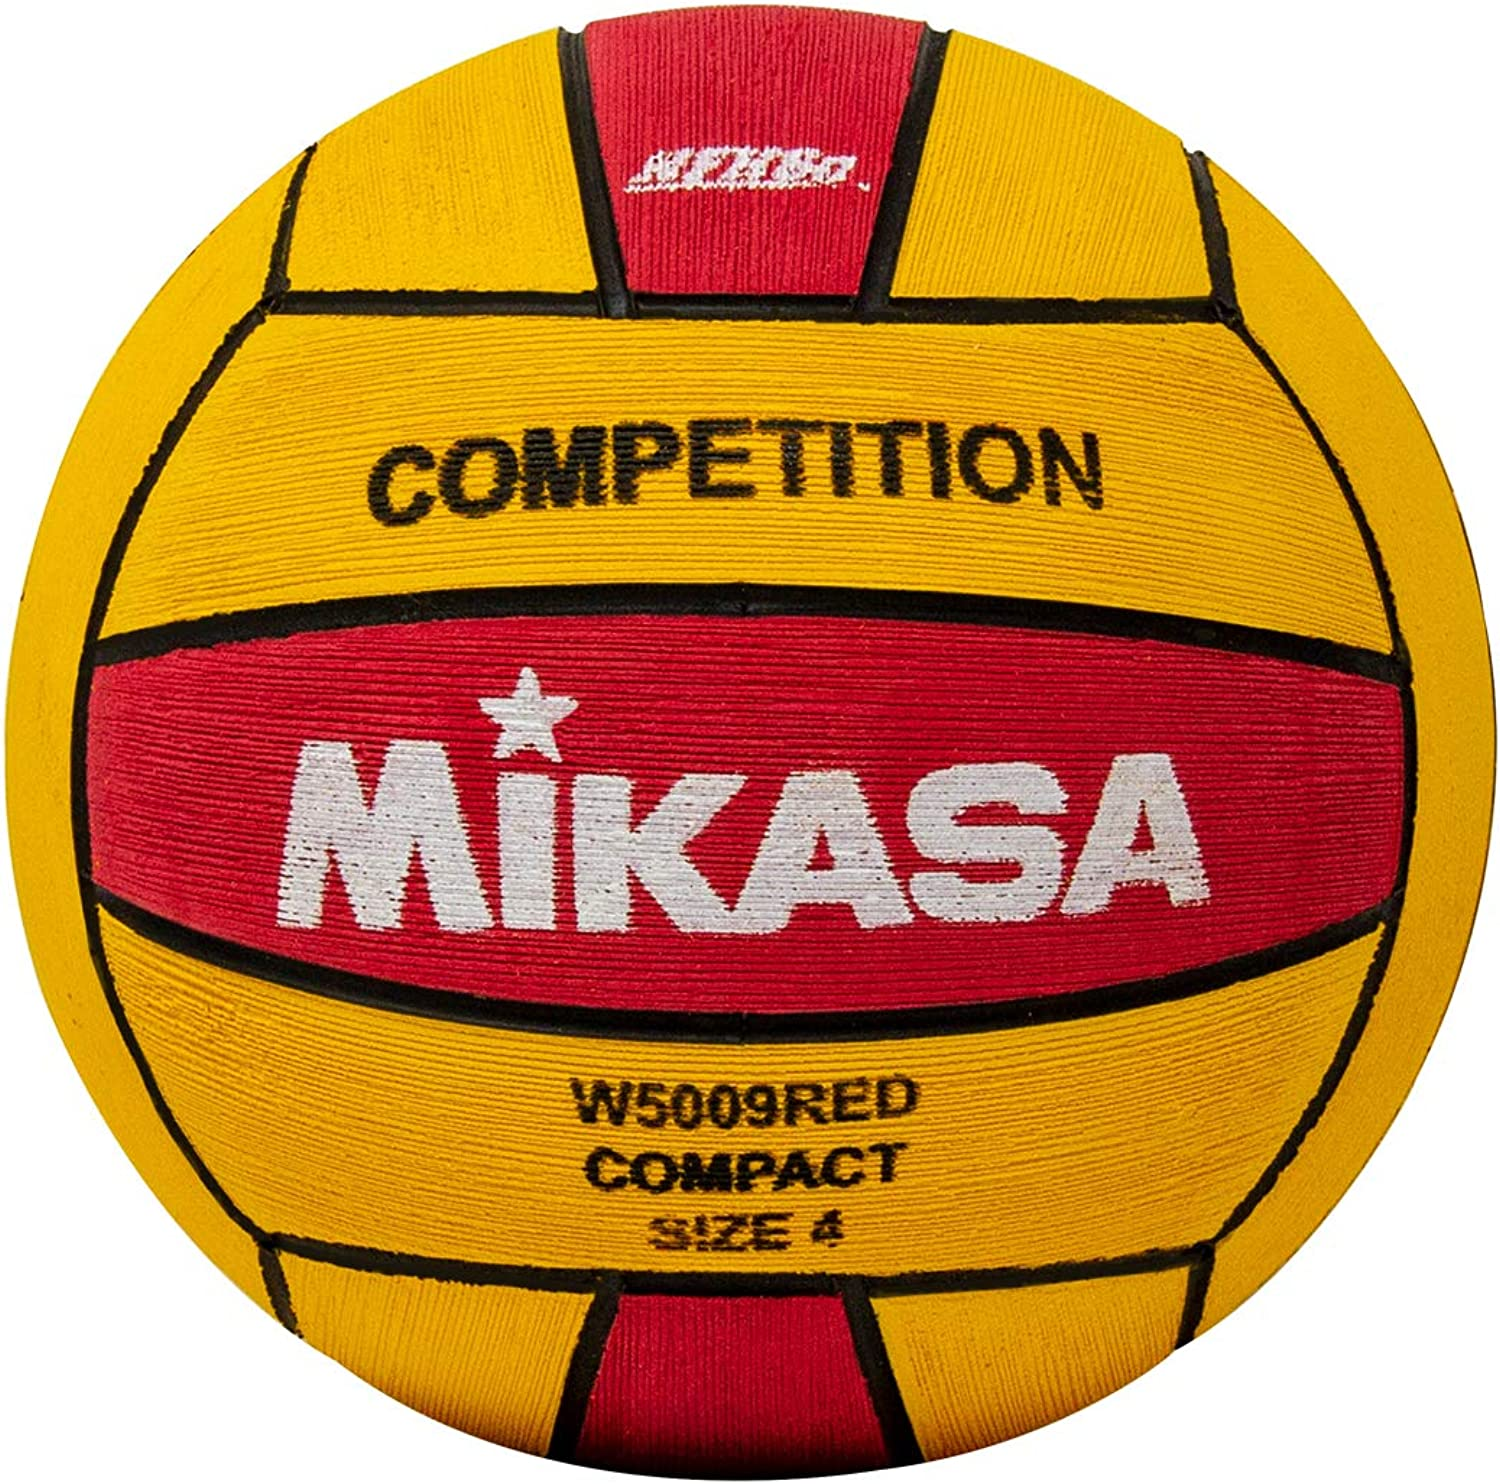 Mikasa Sports Competition Game Ball W5009RED, Red Yellow, Size 4